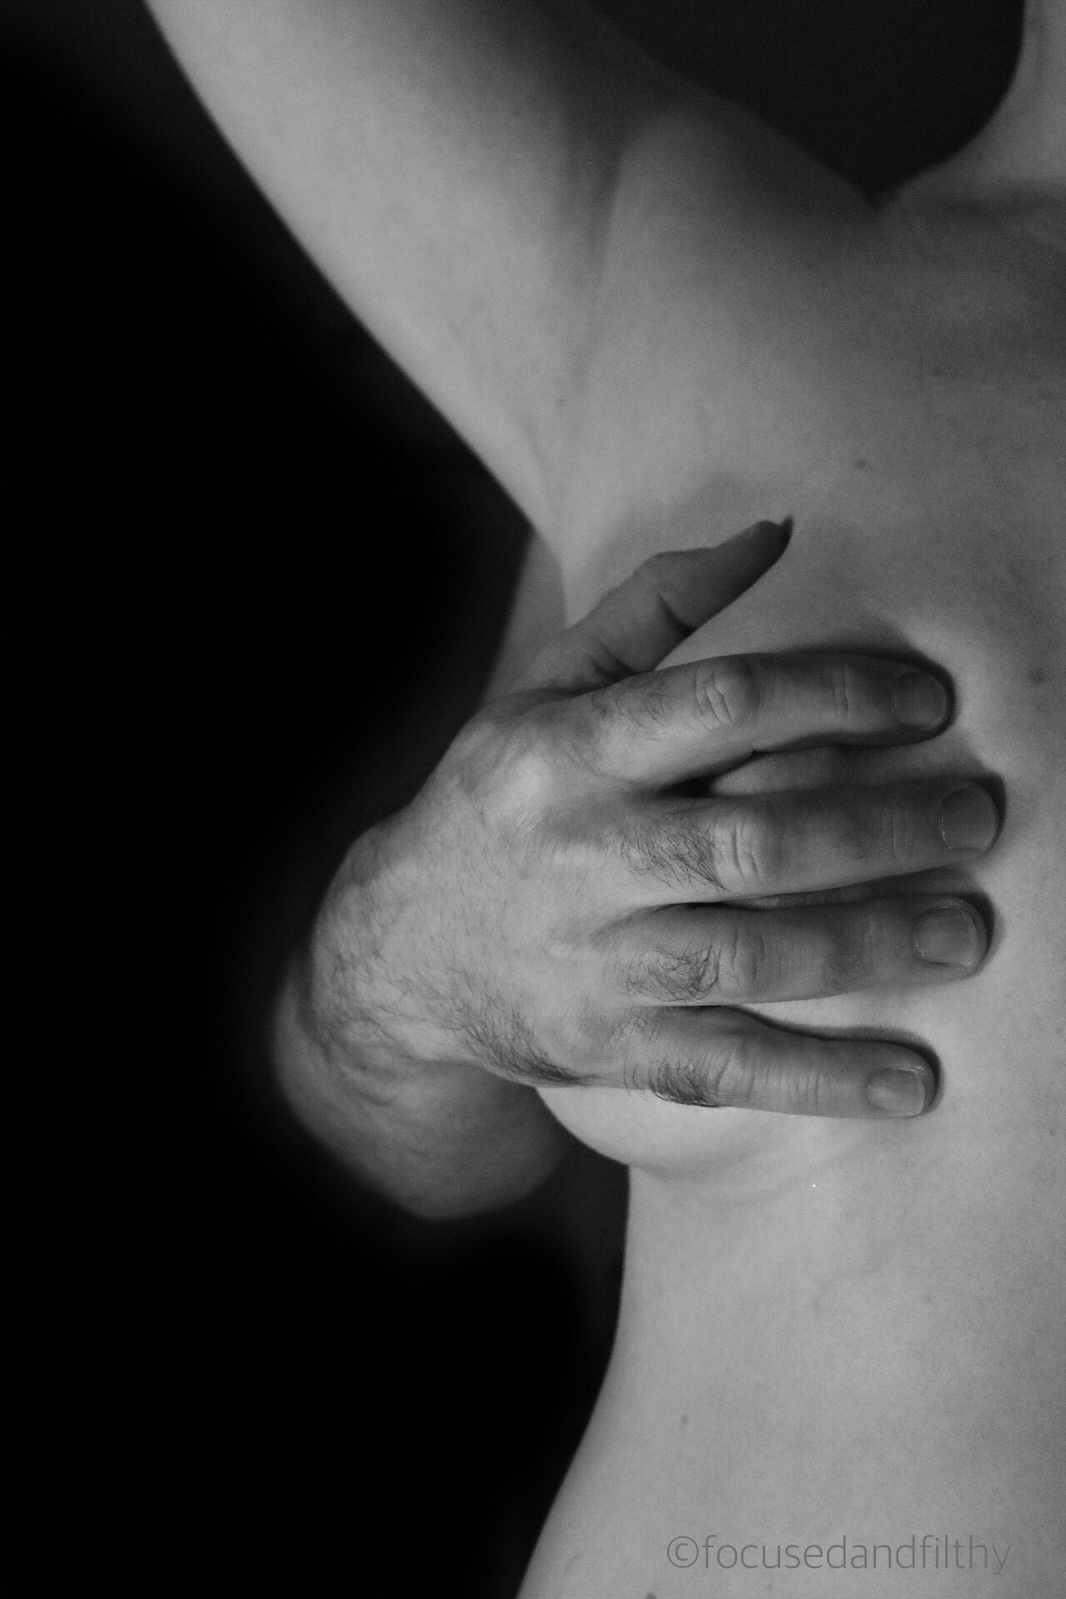 Black and white photograph of half a female naked torso from neck to waist, with a male hand grasping her over her right breast. Background is black.